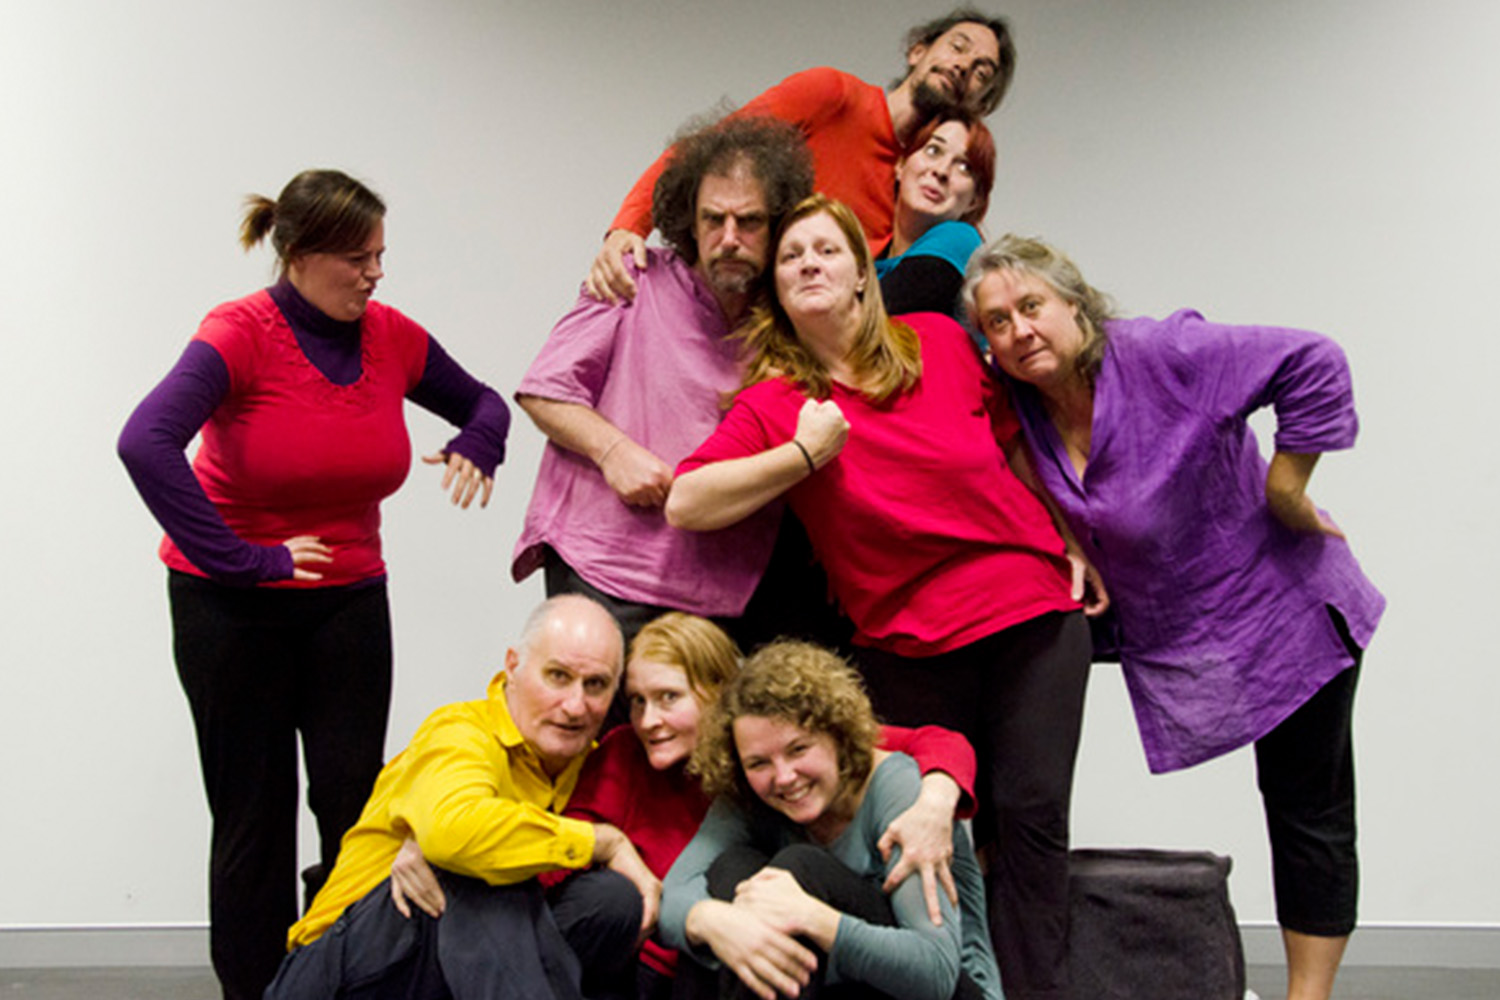 A group of actors pose in various positions